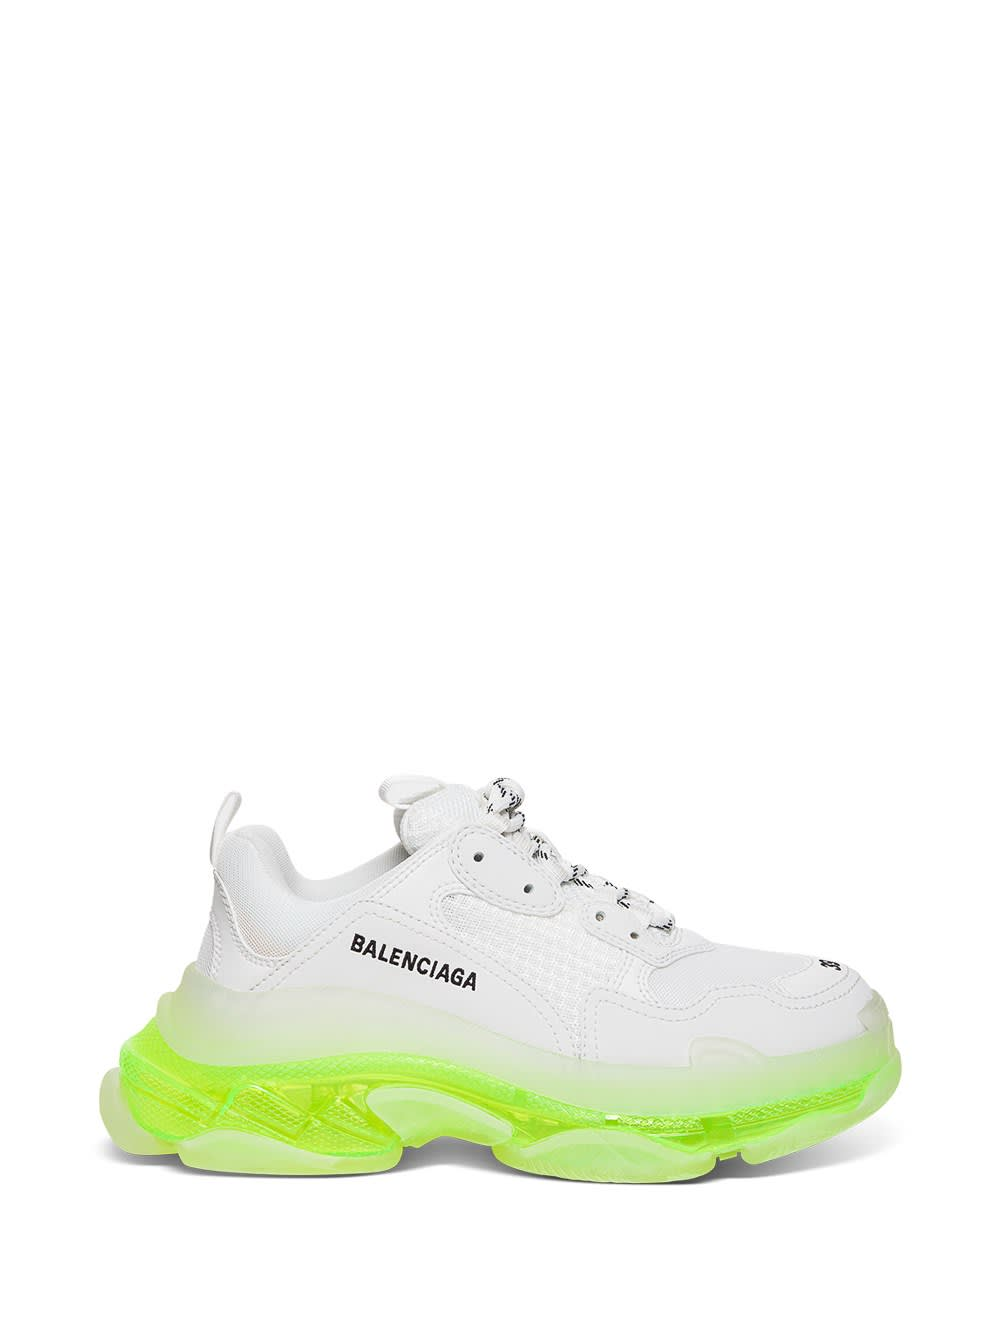 Balenciaga Triple S Clear Sole Sneakers In Double Foam And Mesh In White And Neon Yellow